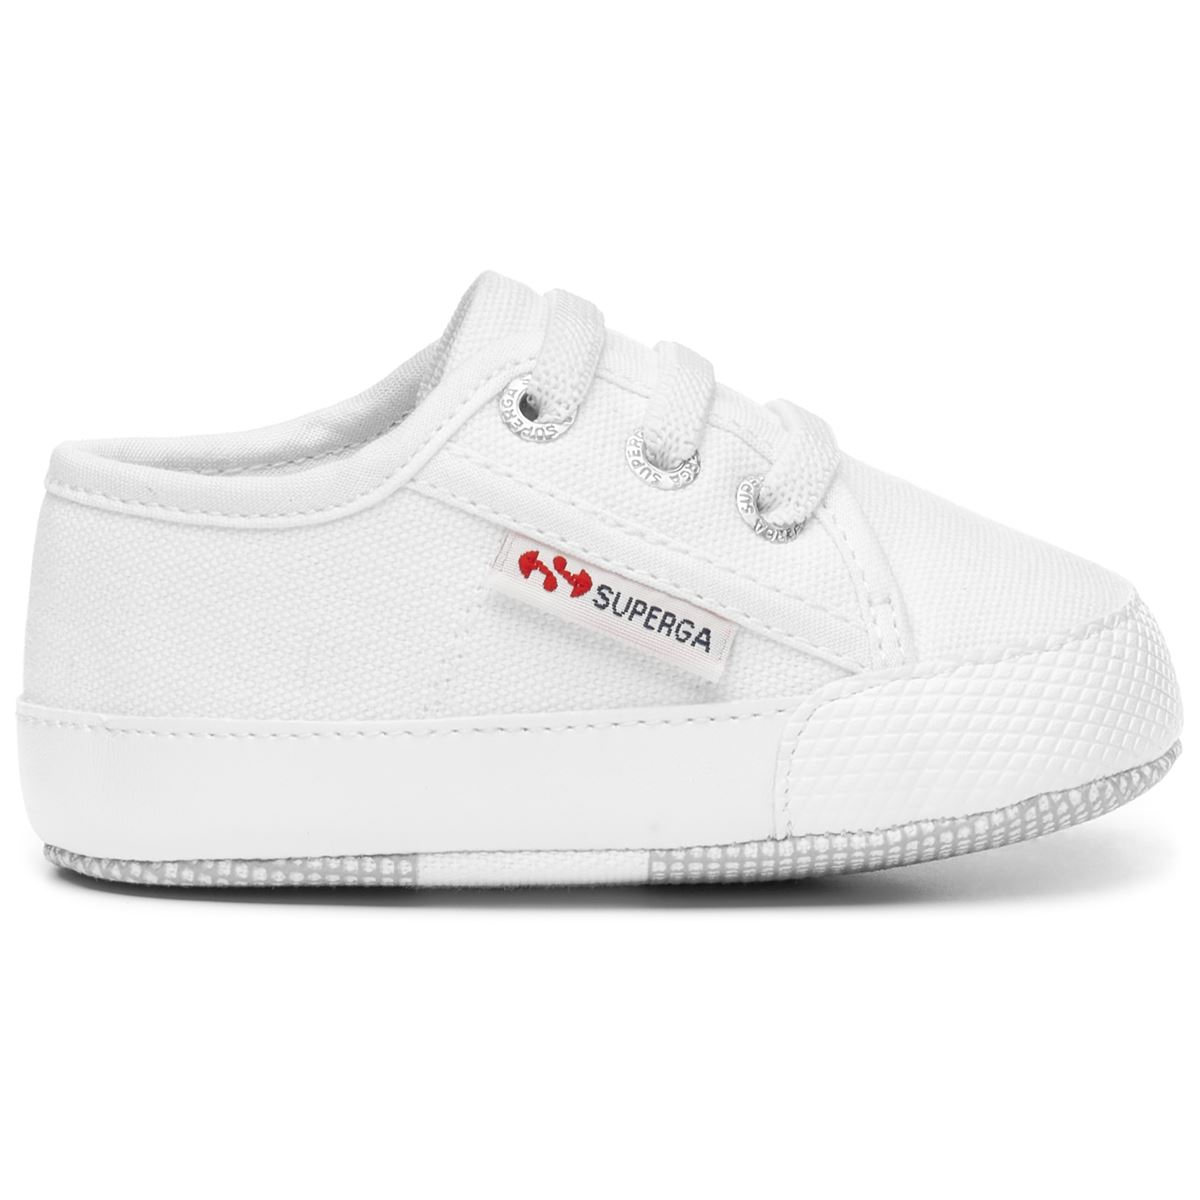 Italian Sneakers Superga for kid men and women-S1116JW